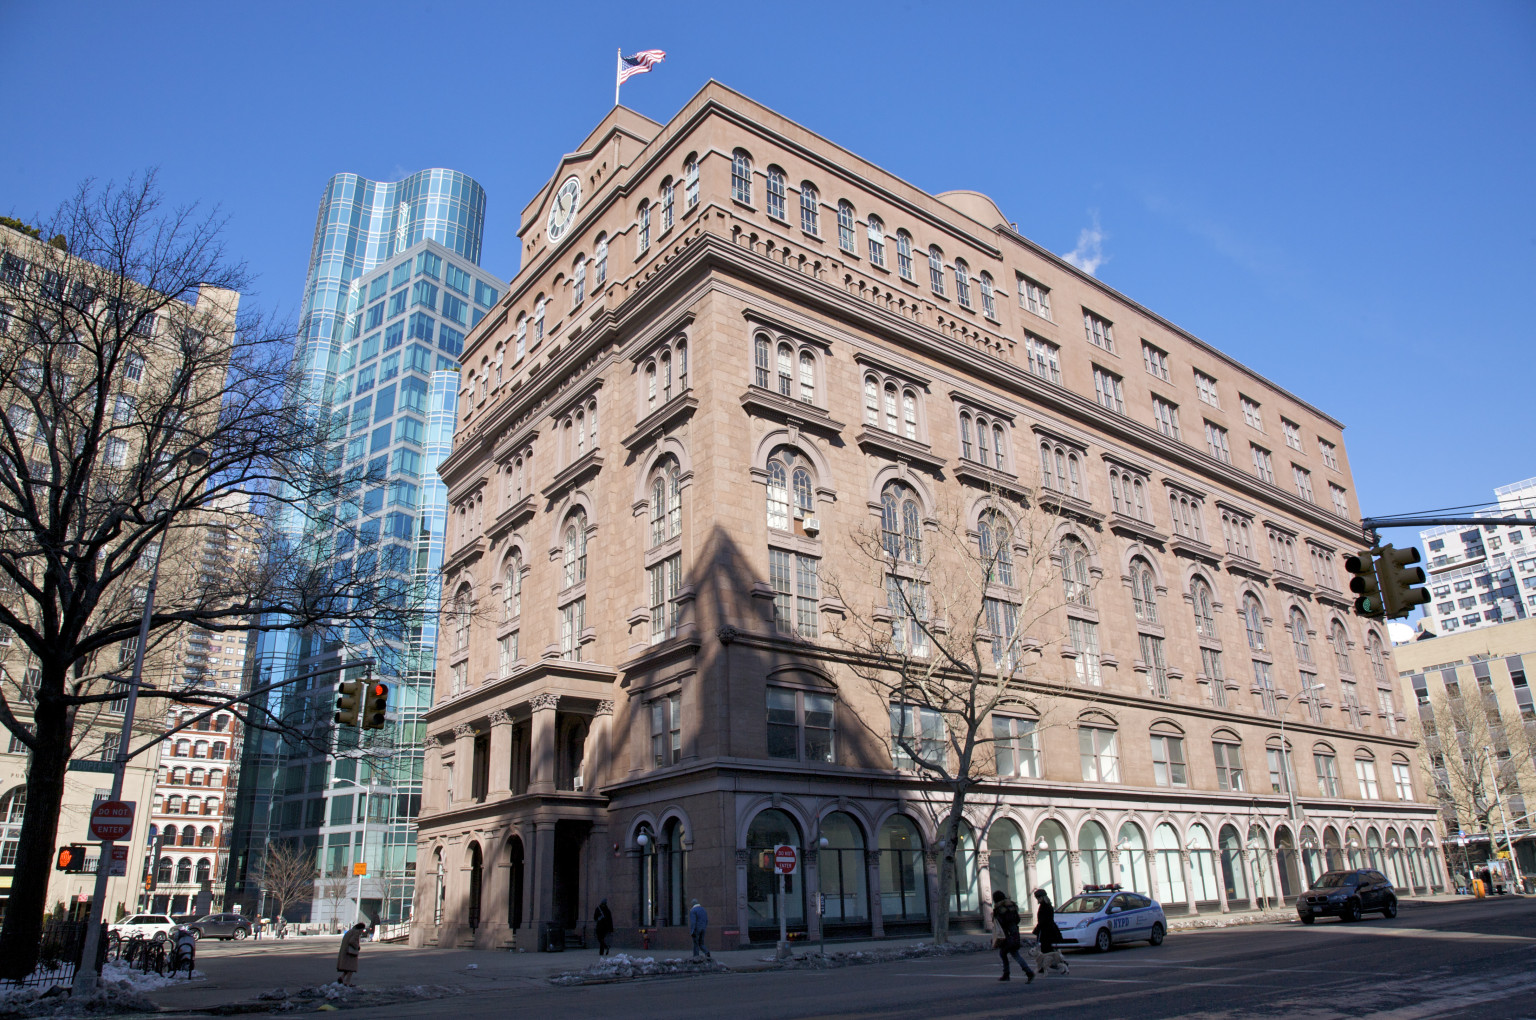 The Cooper Union Amp Tuition Spikes What Does It Mean For